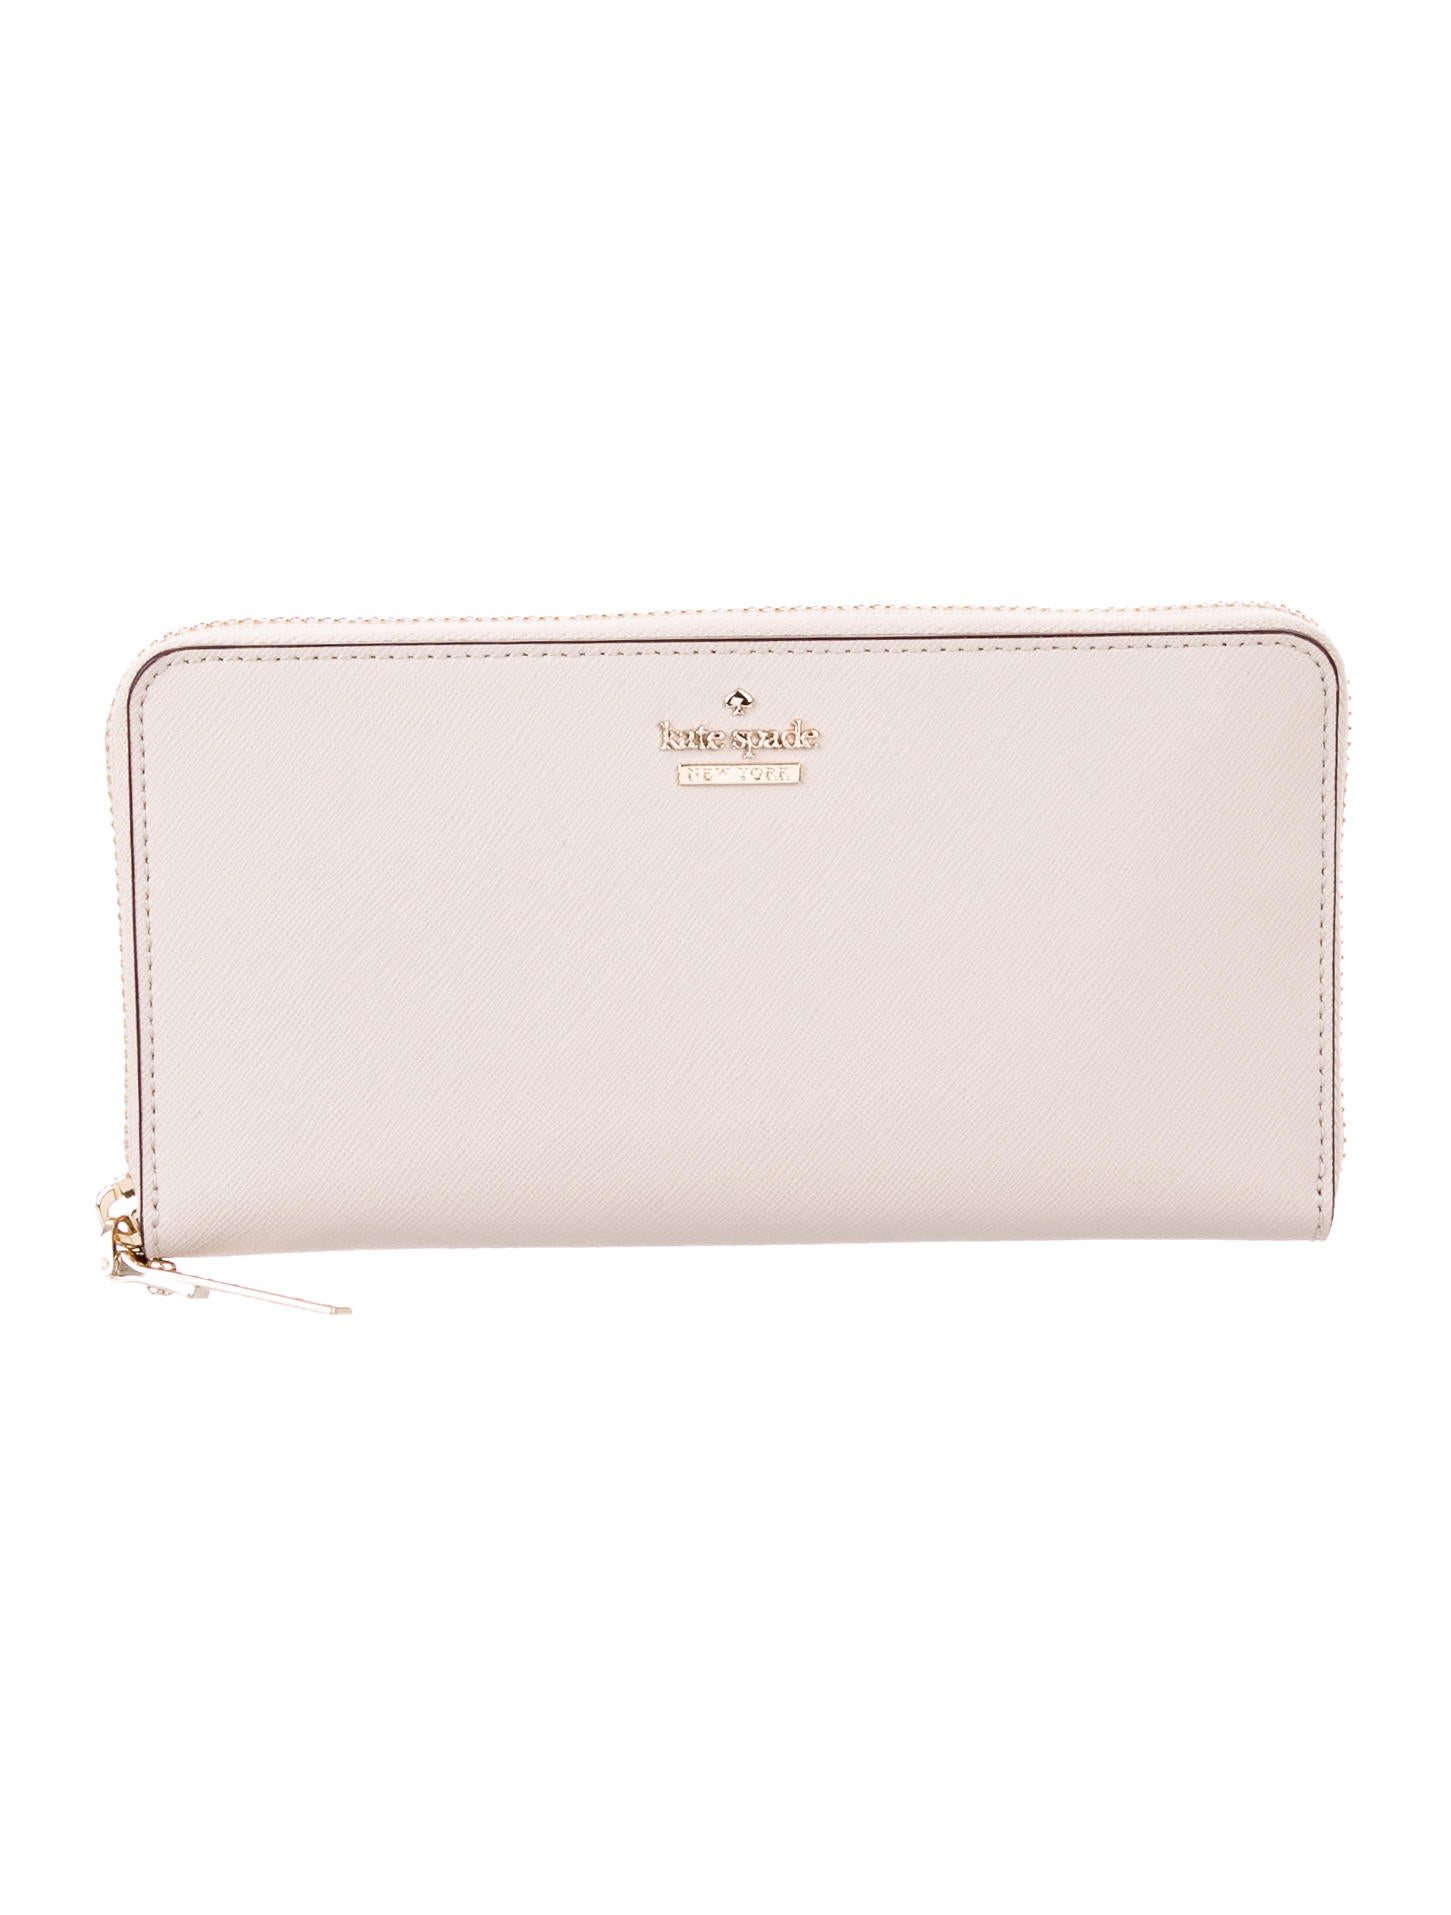 Kate Spade New York Leather Logo Wallet Accessories  : WKA683871enlarged from www.therealreal.com size 1451 x 1915 jpeg 116kB